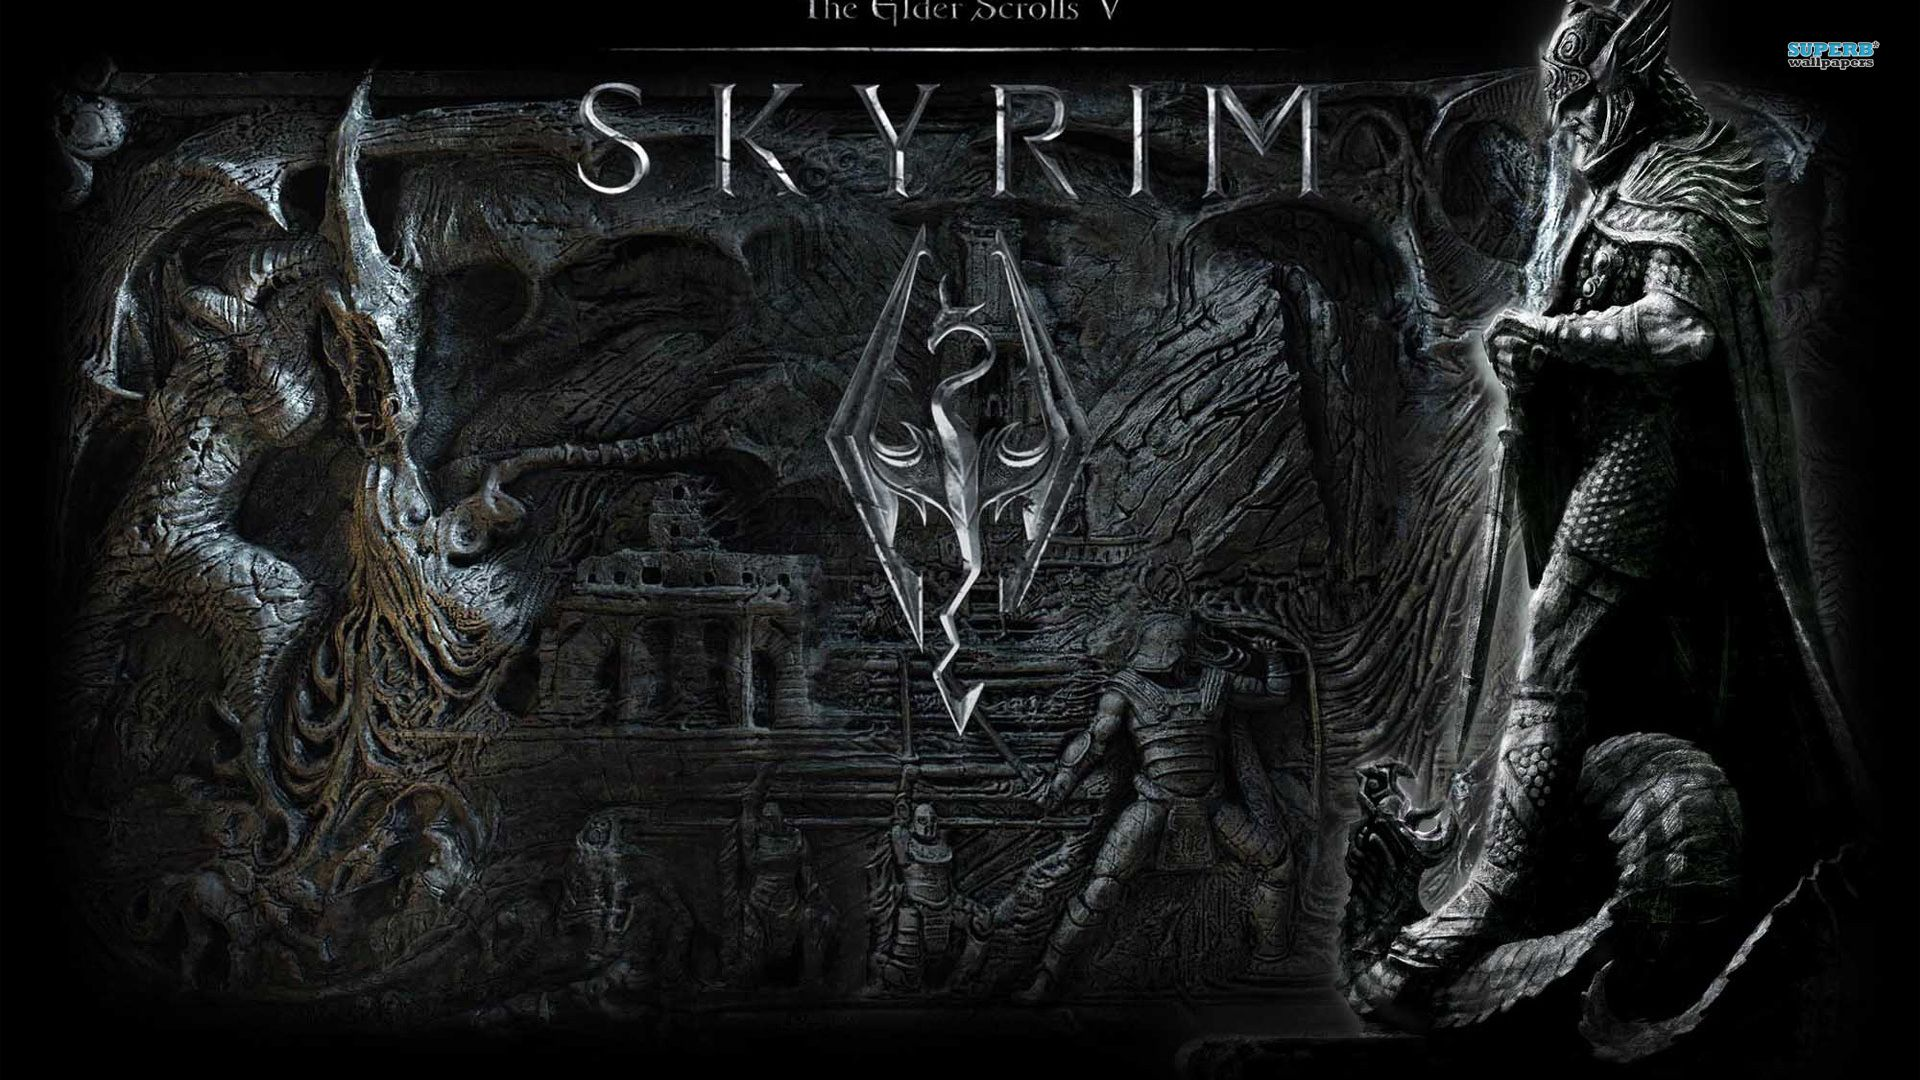 Skyrim Wallpaper 1920x1080 Google Search Gaming